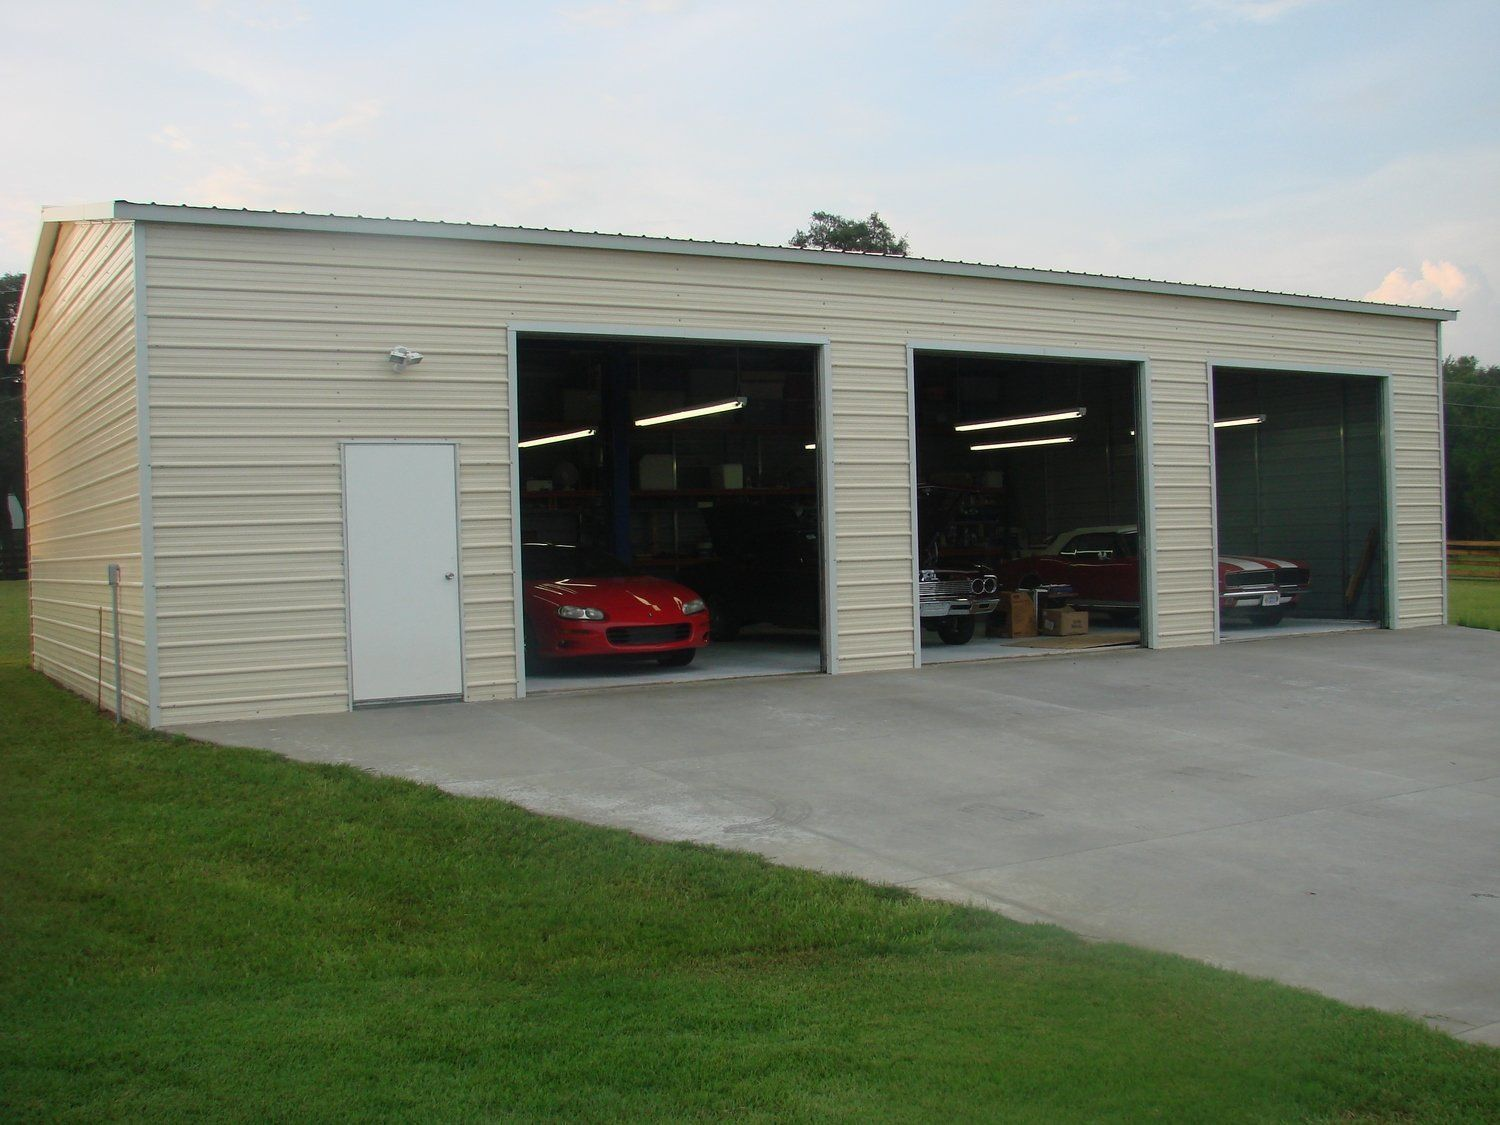 Three Car Garage 24 X 50 X 12 With Three 10 X 10 Roll Up Doors And One Walk In Door Store Metal Garage Buildings Garage Door Design Steel Garage Buildings